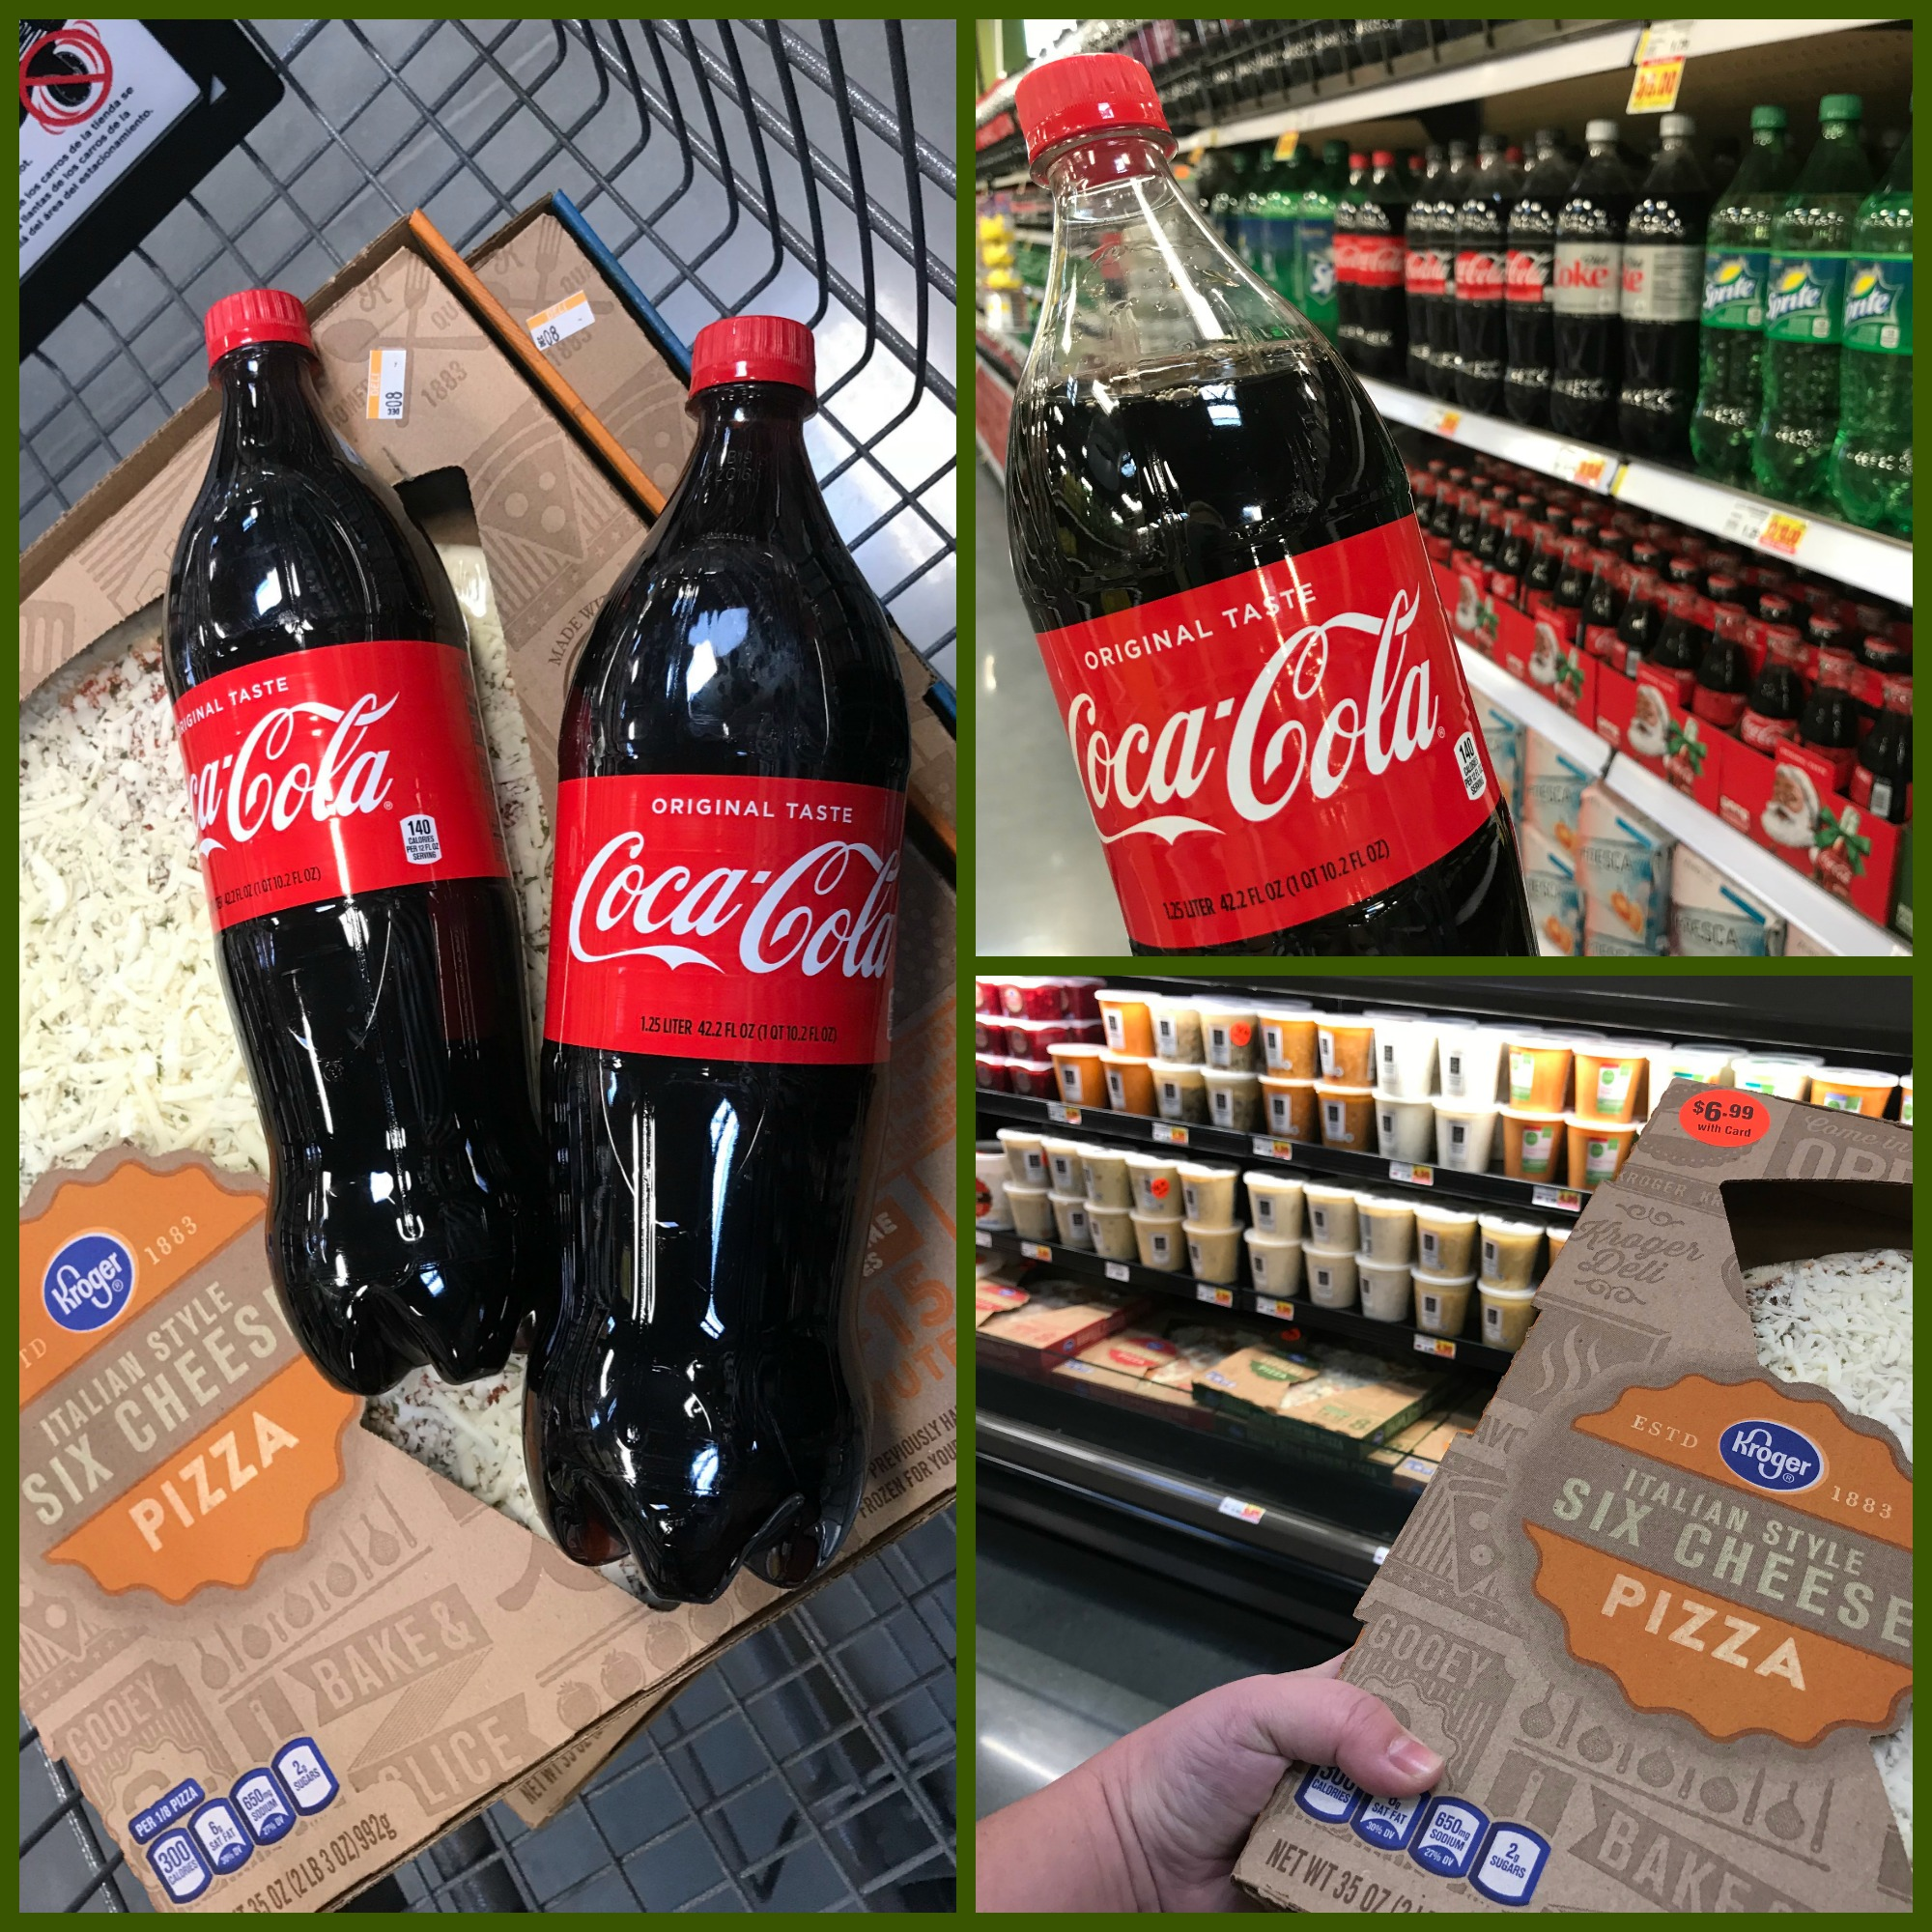 Gift Mom a Night off with Coca-Cola & Kroger Fresh Ready to Heat Pizza